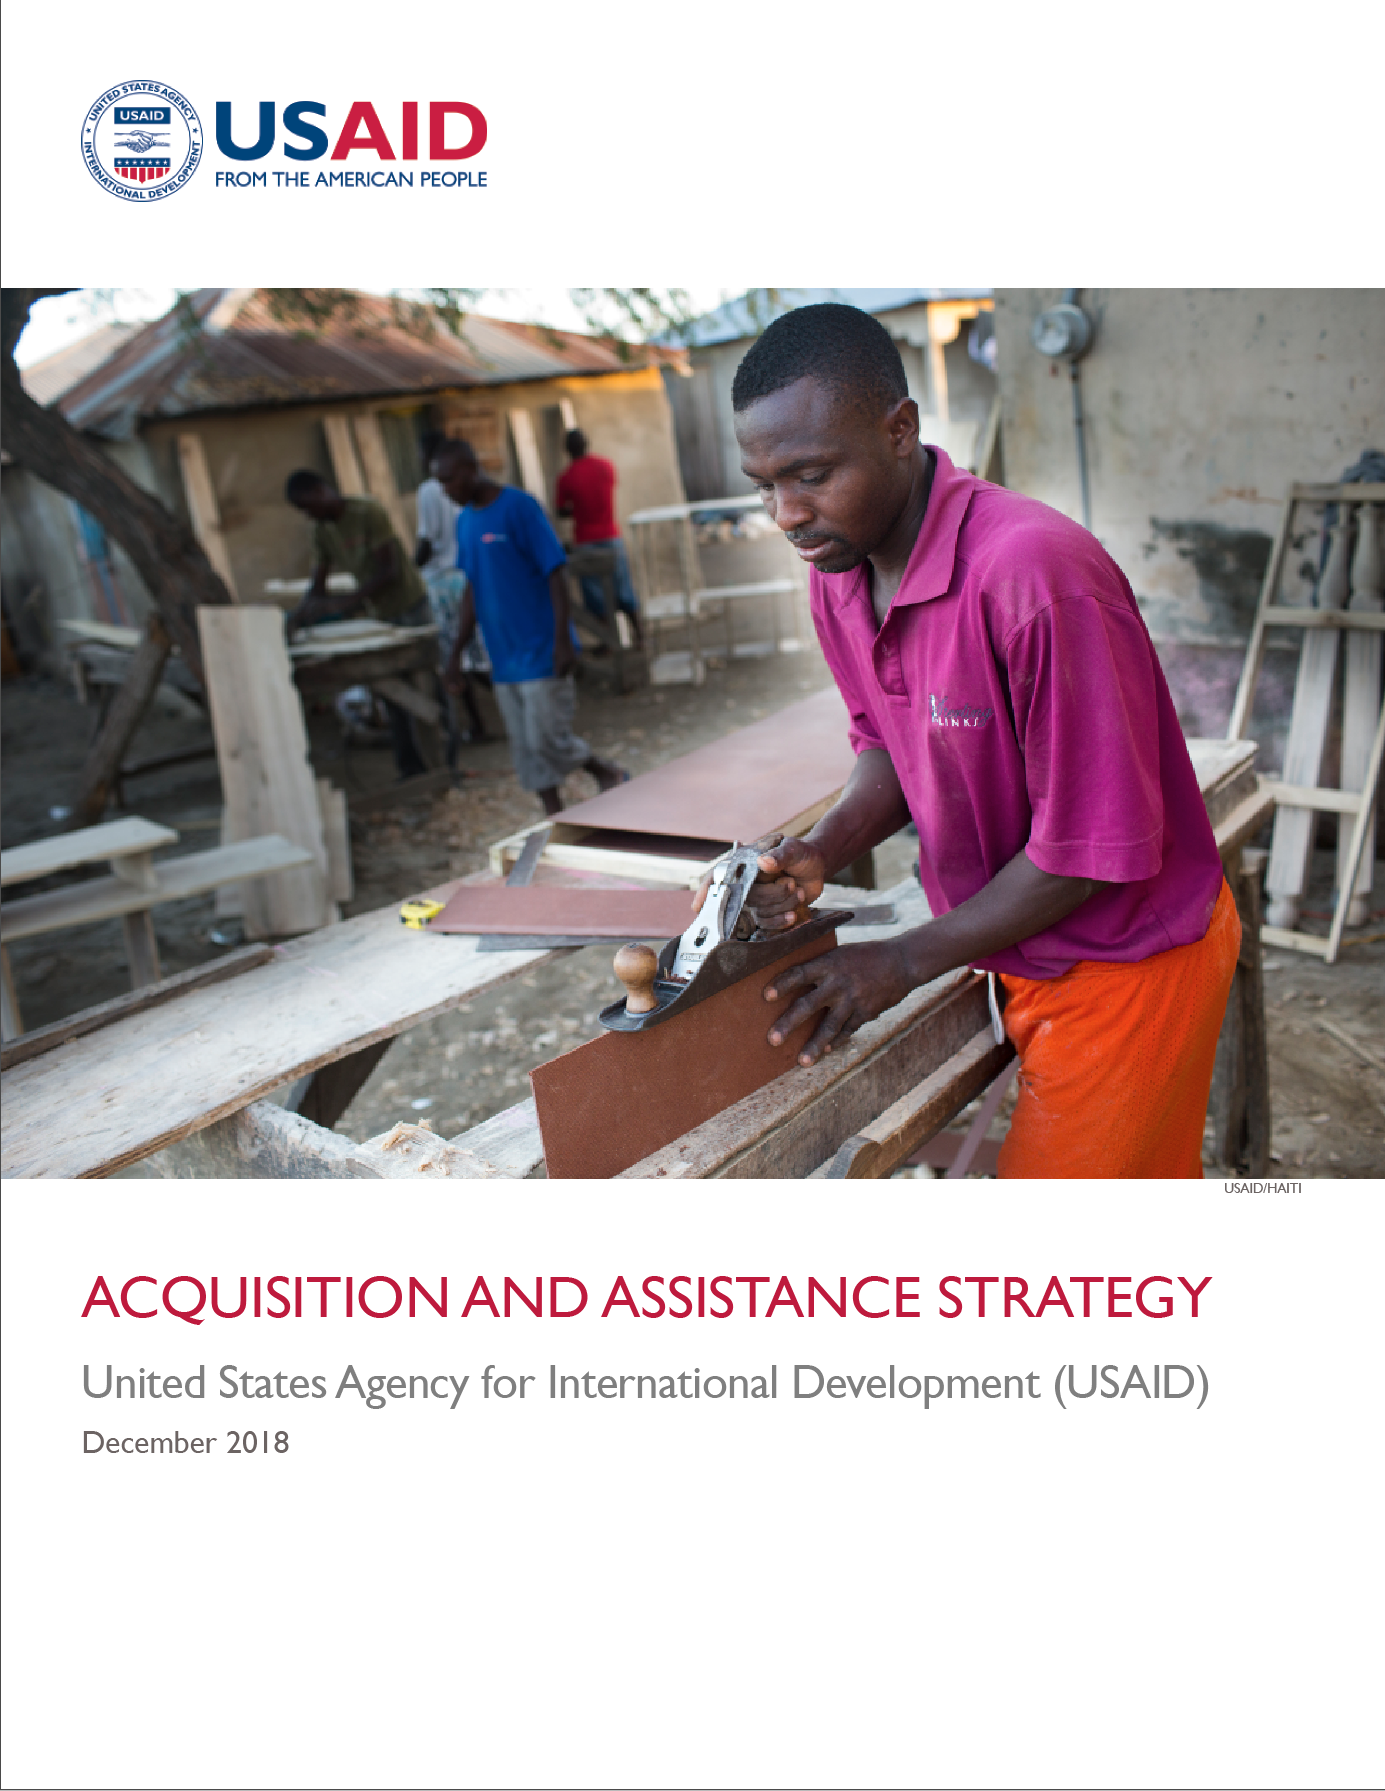 ACQUISITION and ASSISTANCE STRATEGY 2018